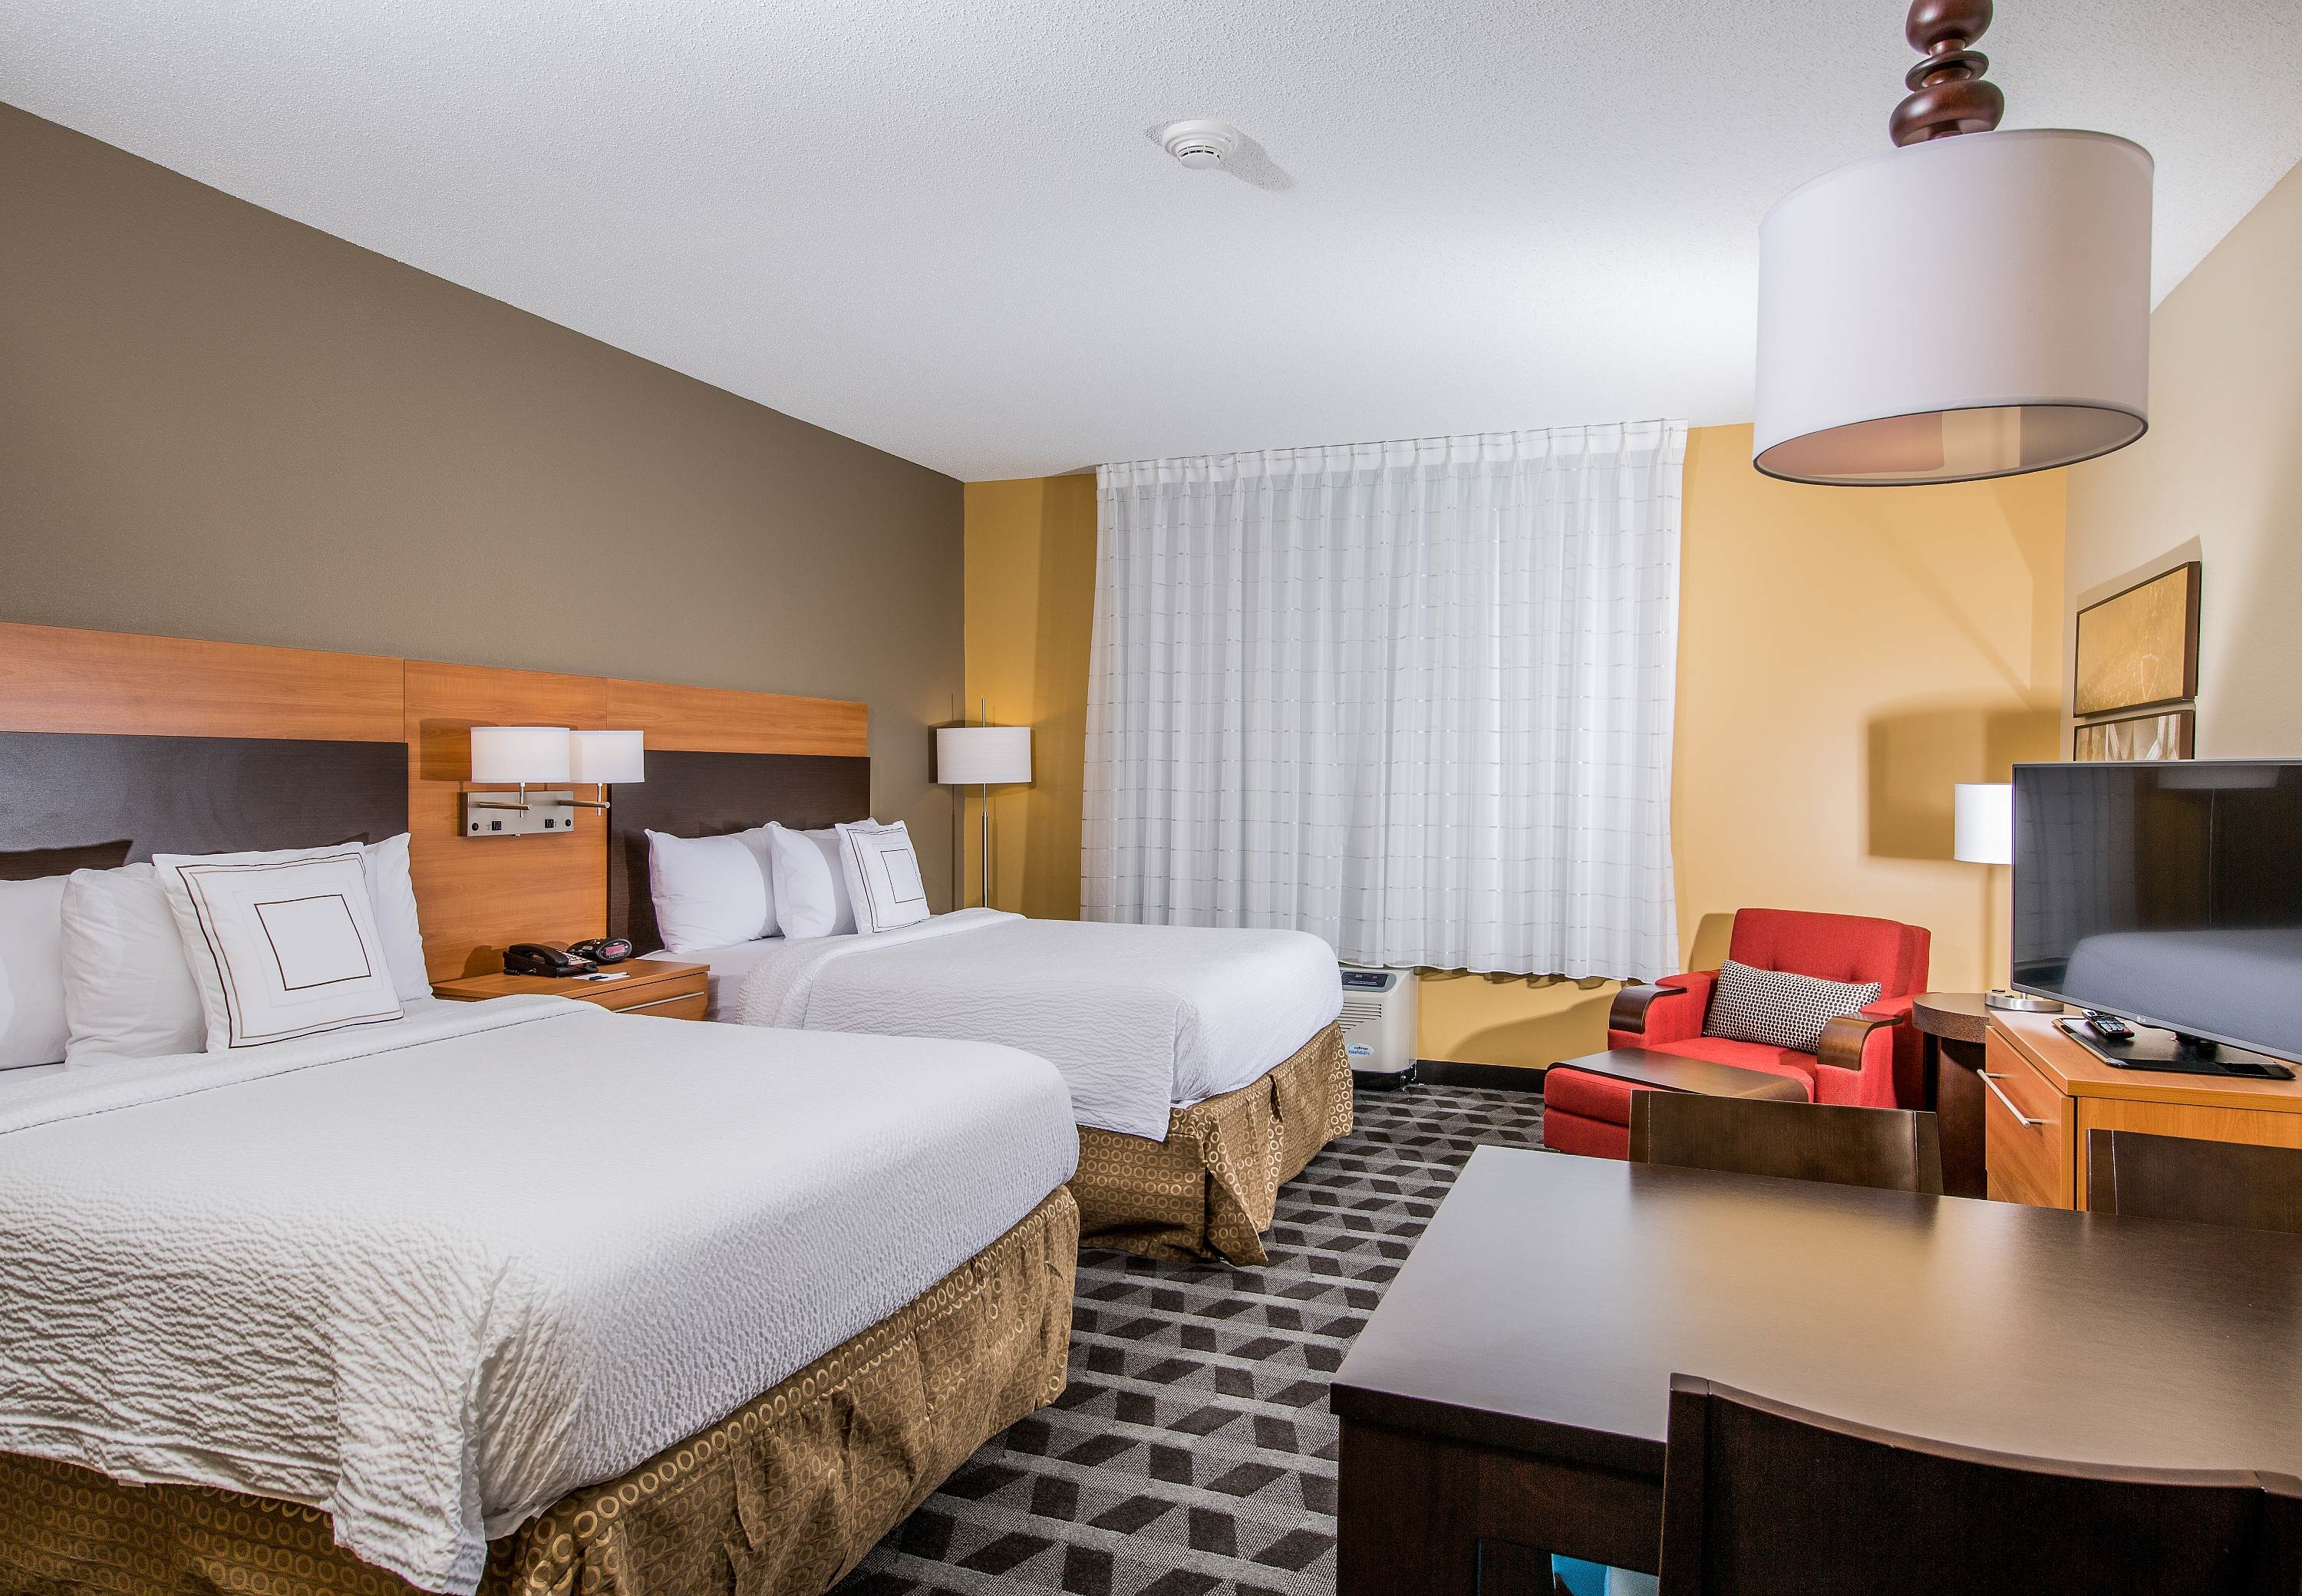 TownePlace Suites by Marriott Florence image 12